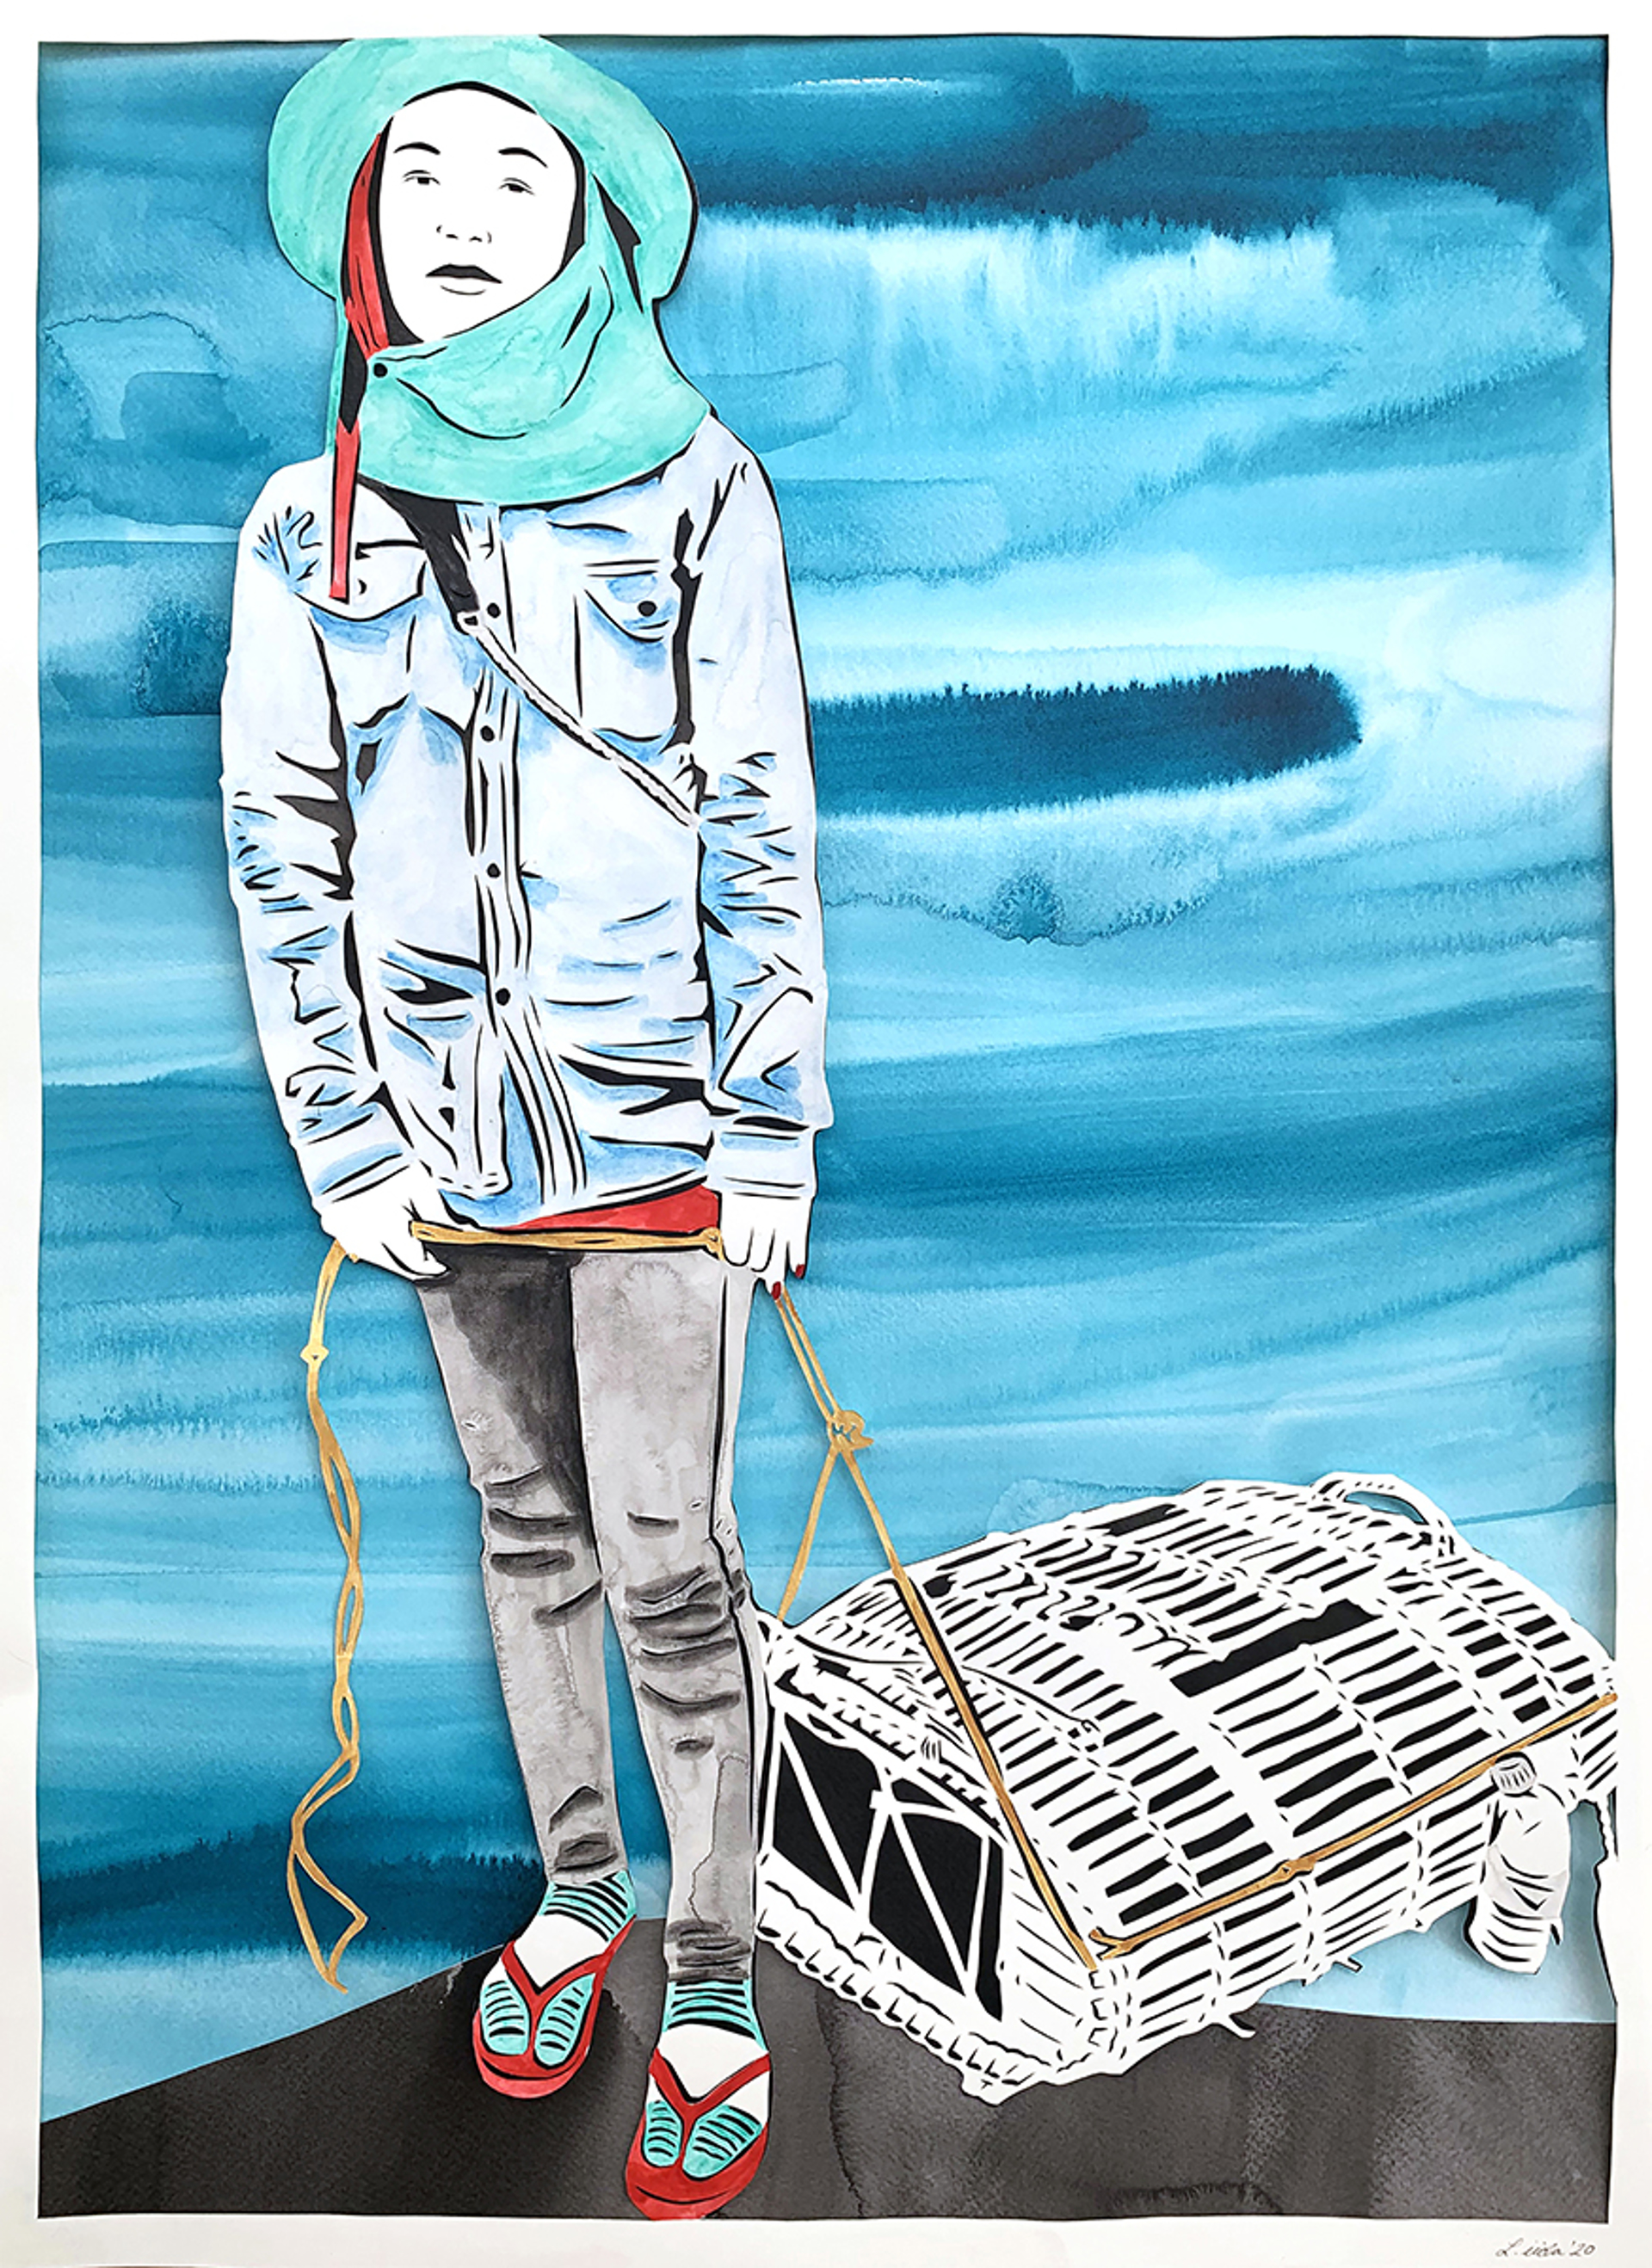 7. Chilly: The Appearance of a Fisherwoman at the Kep Crab Market by Lauren Iida